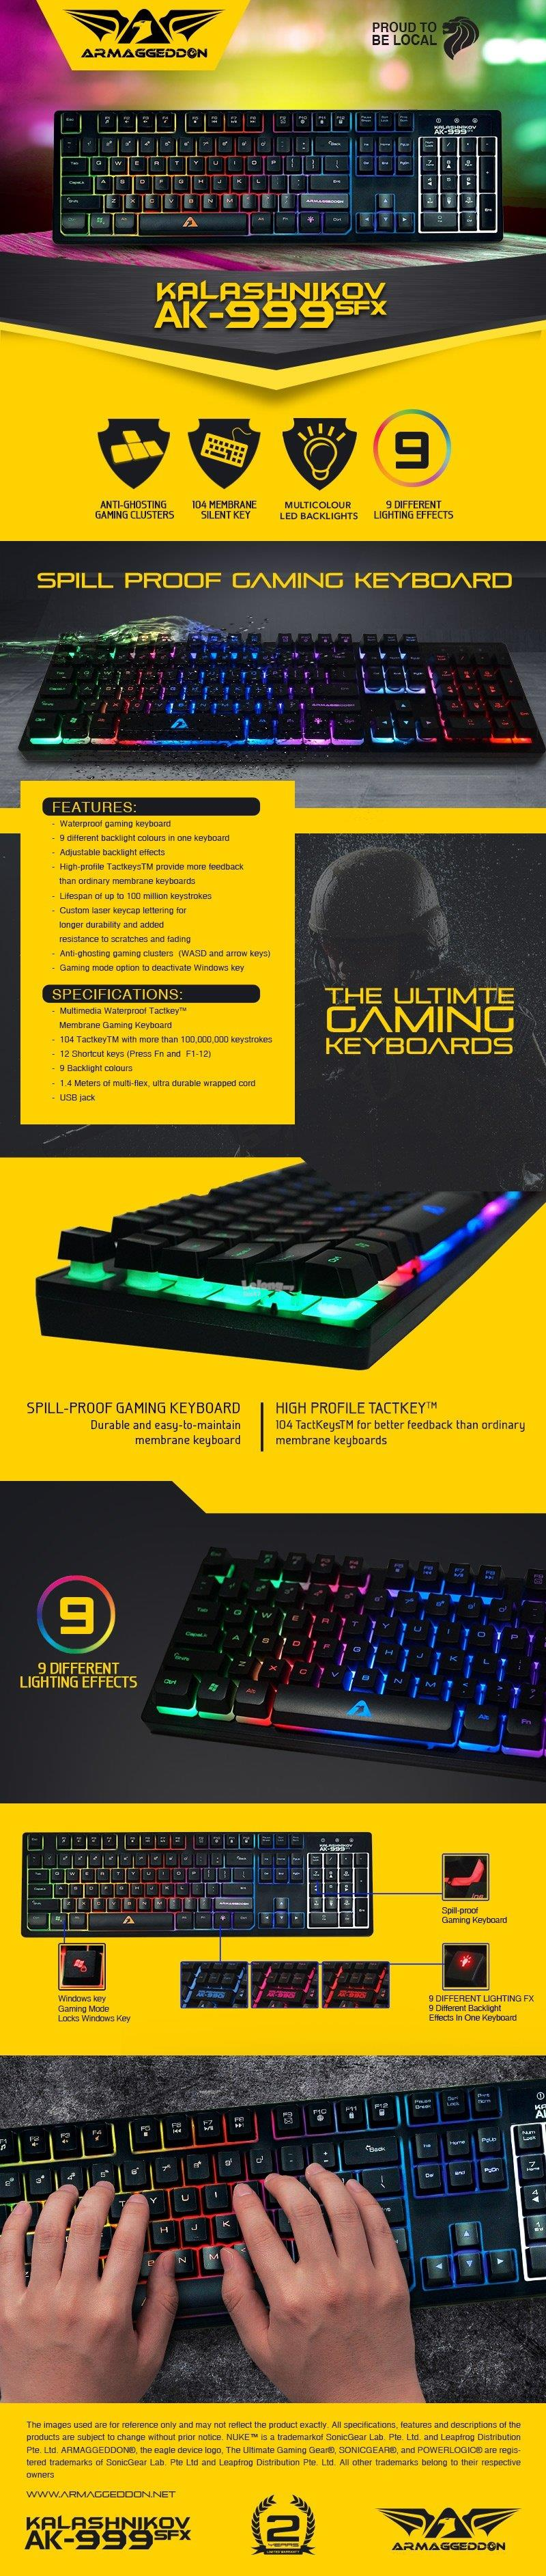 Armaggeddon AK-999 SFX Spill Proof Gaming Keyboard